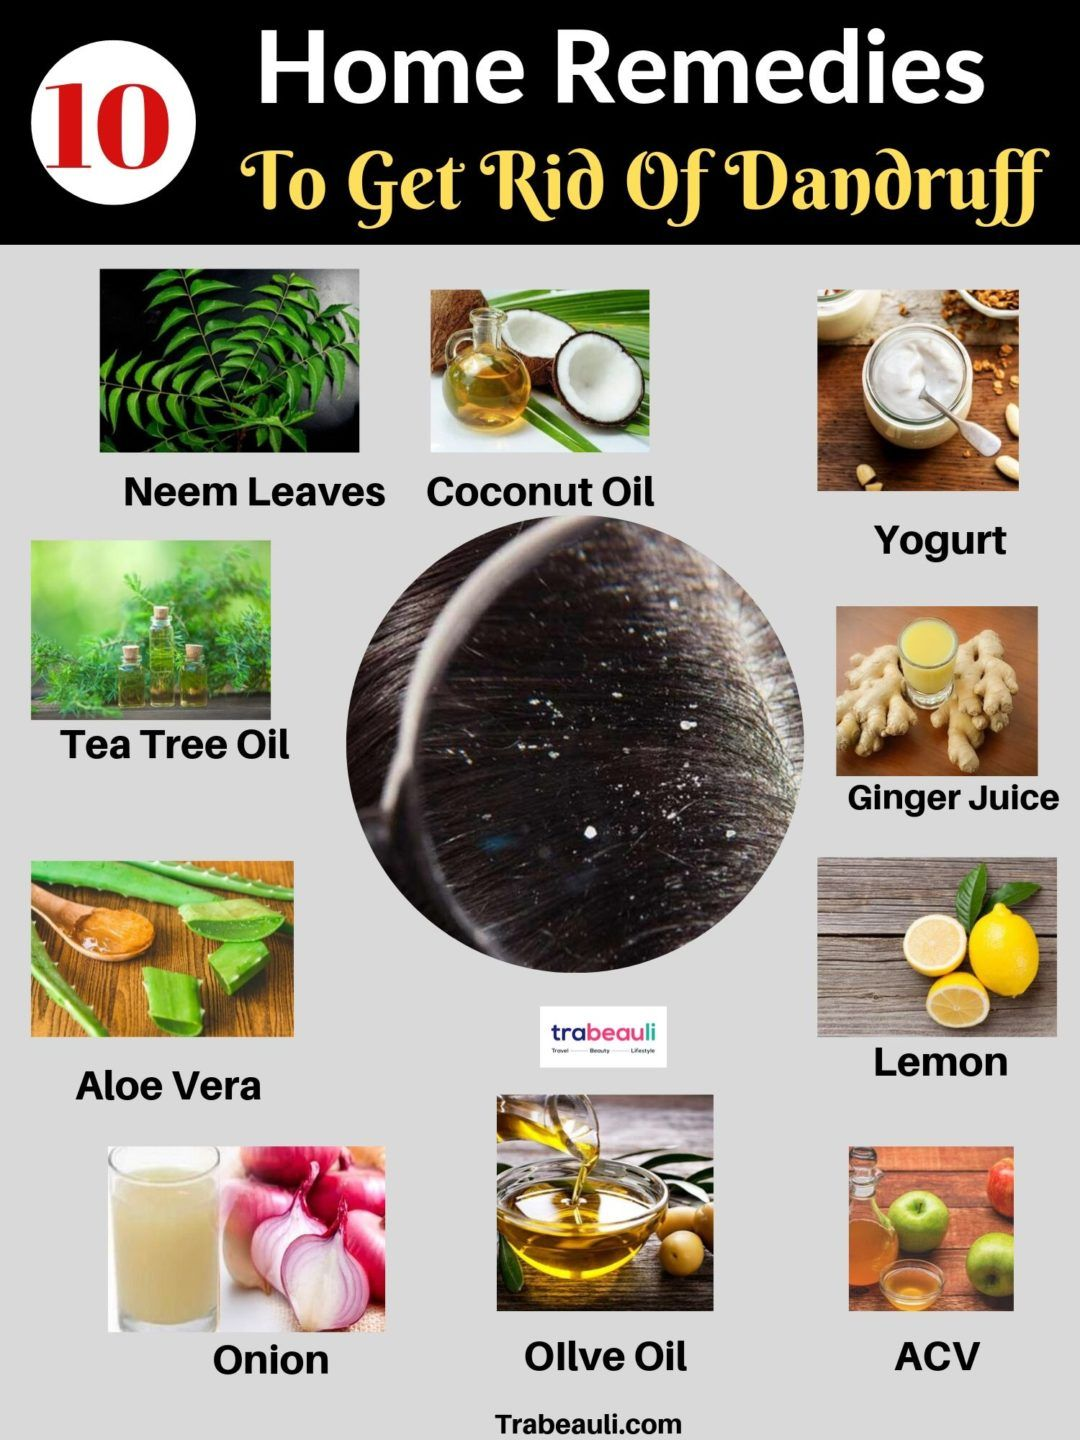 Get Rid Of Dandruff Fast With Home Remedies Treatment Trabeauli Dandruff Remedy Getting Rid Of Dandruff How To Cure Dandruff